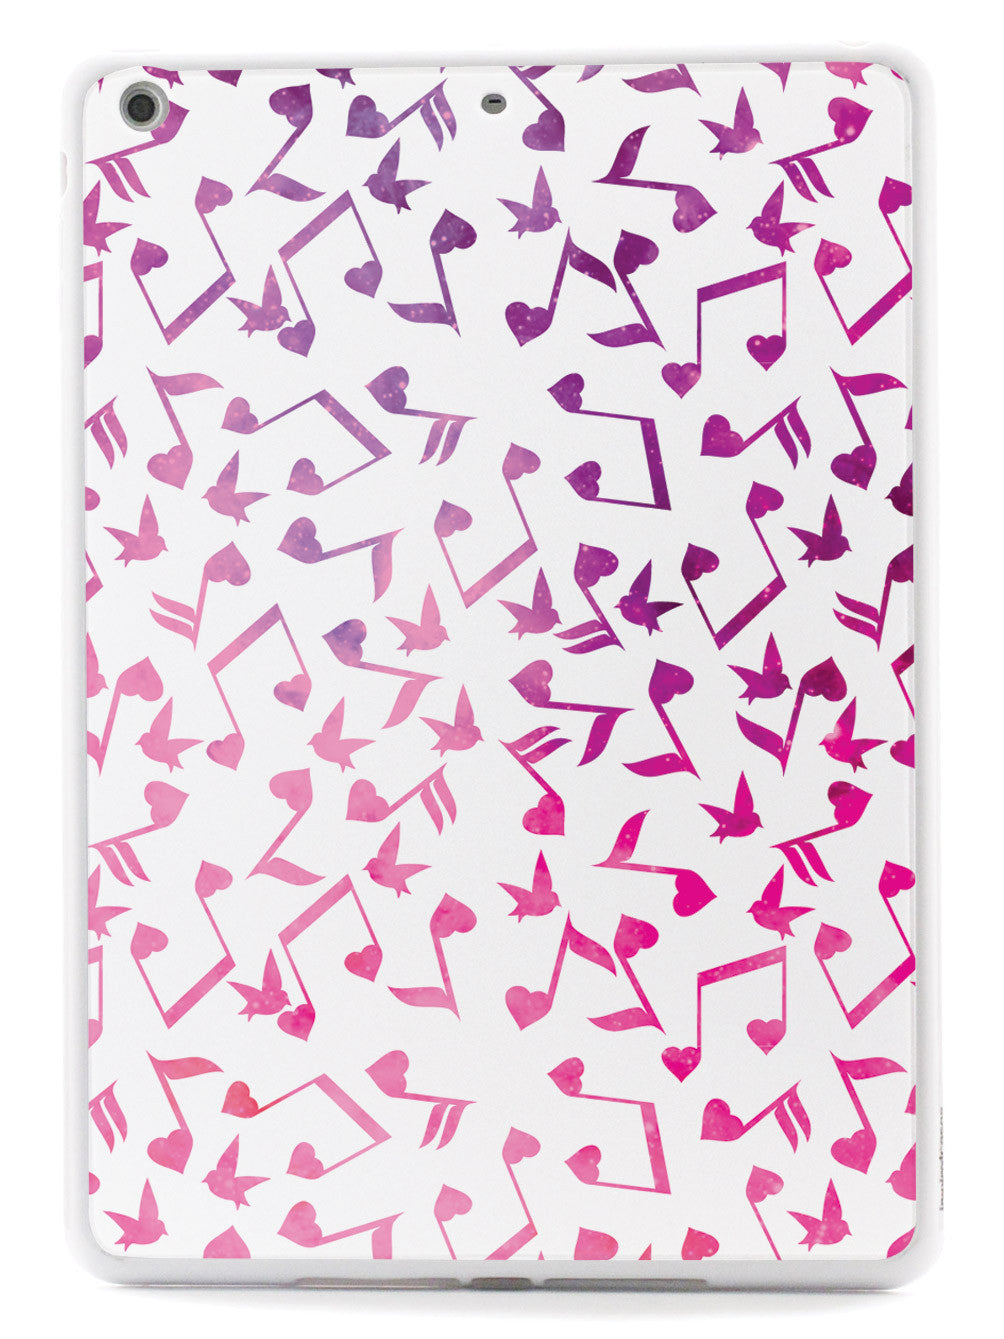 Heart Music Notes Pattern - Pink Watercolor - White Case